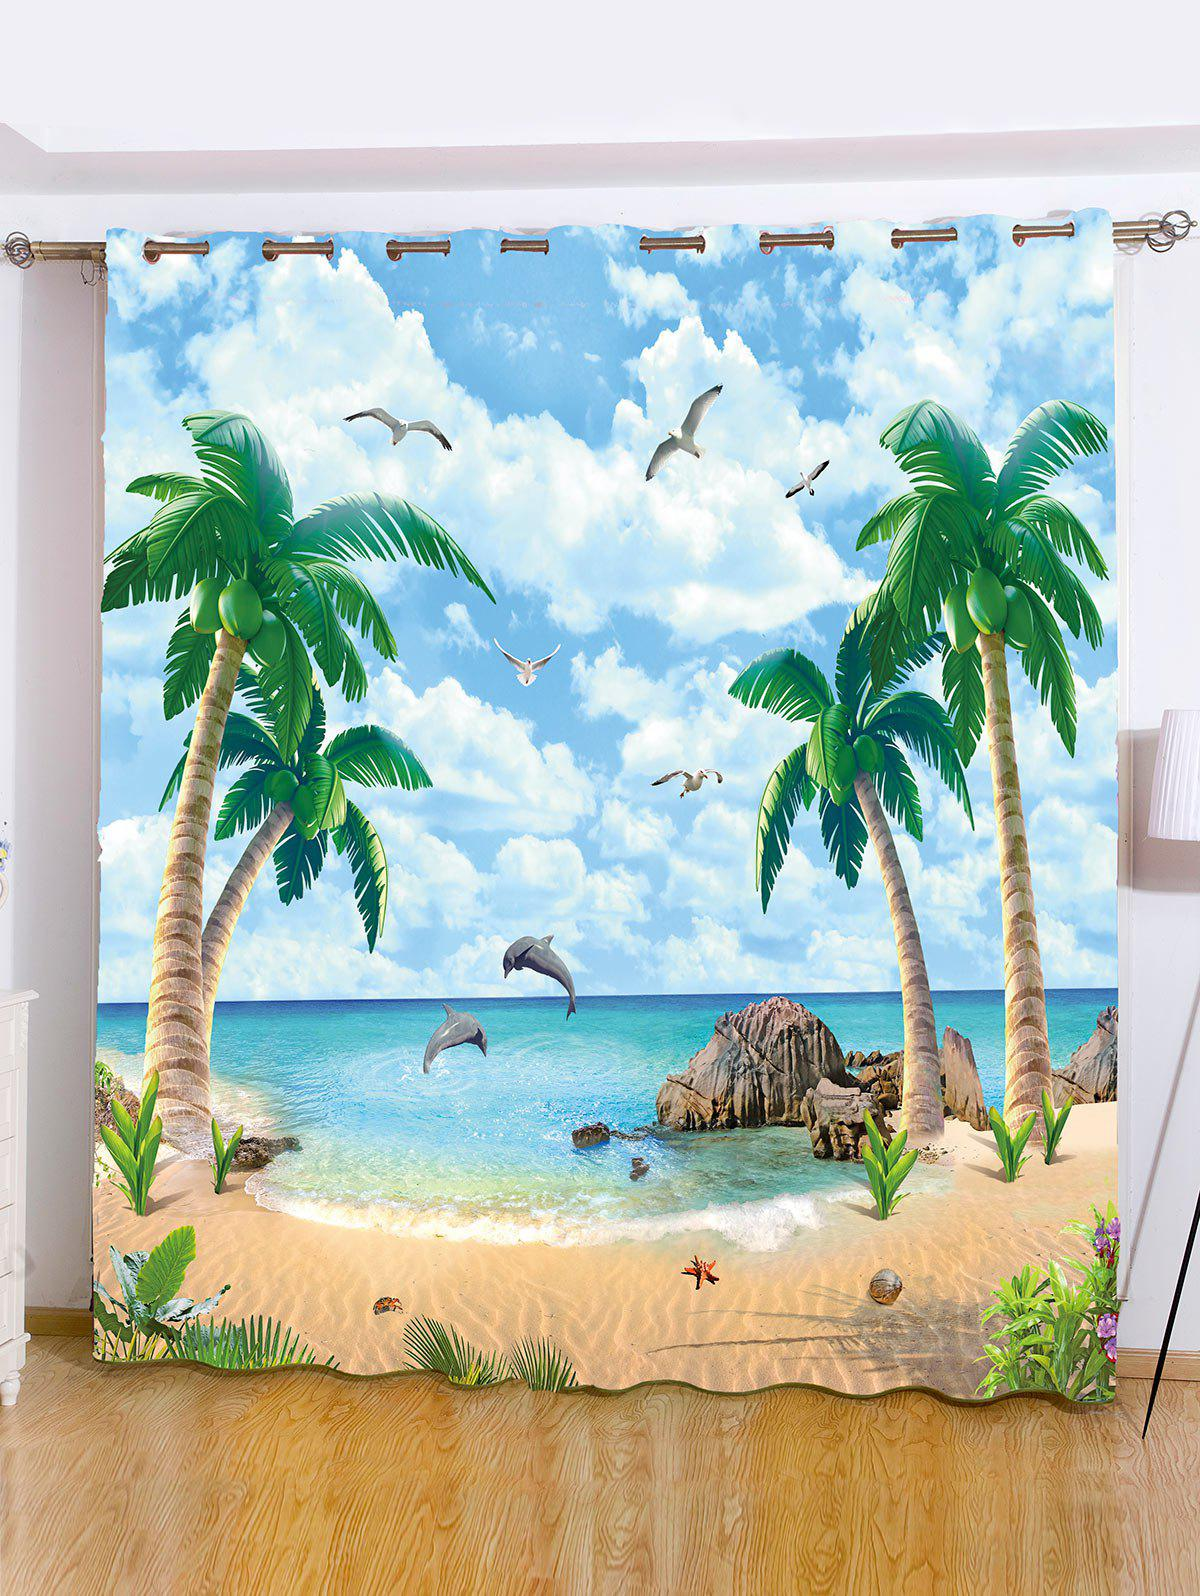 Beach Palm Tree Window Screening Blackout Curtain beach palm tree waterproof anti bacteria shower curtain